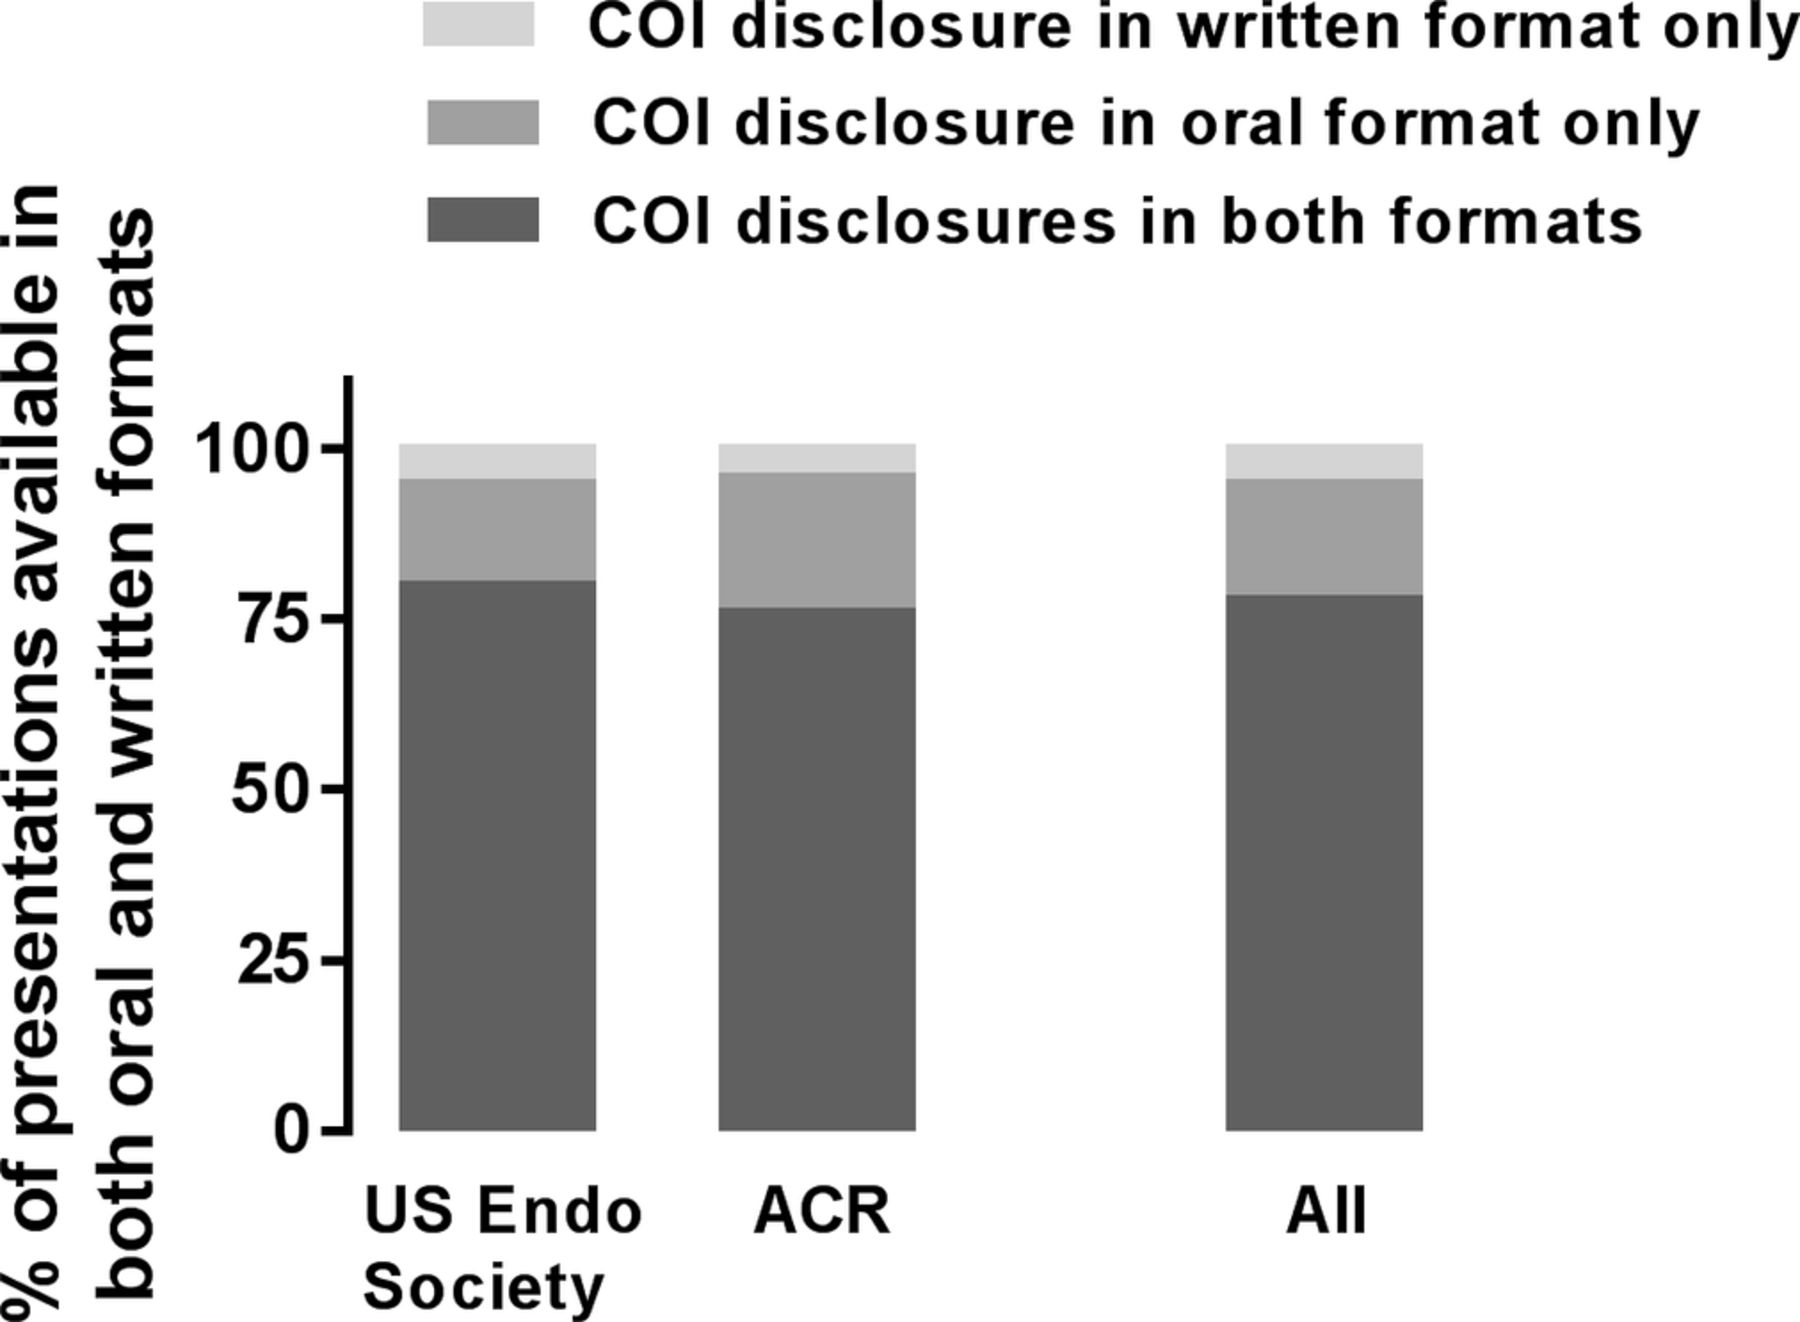 reporting of conflicts of interest in oral presentations at medical